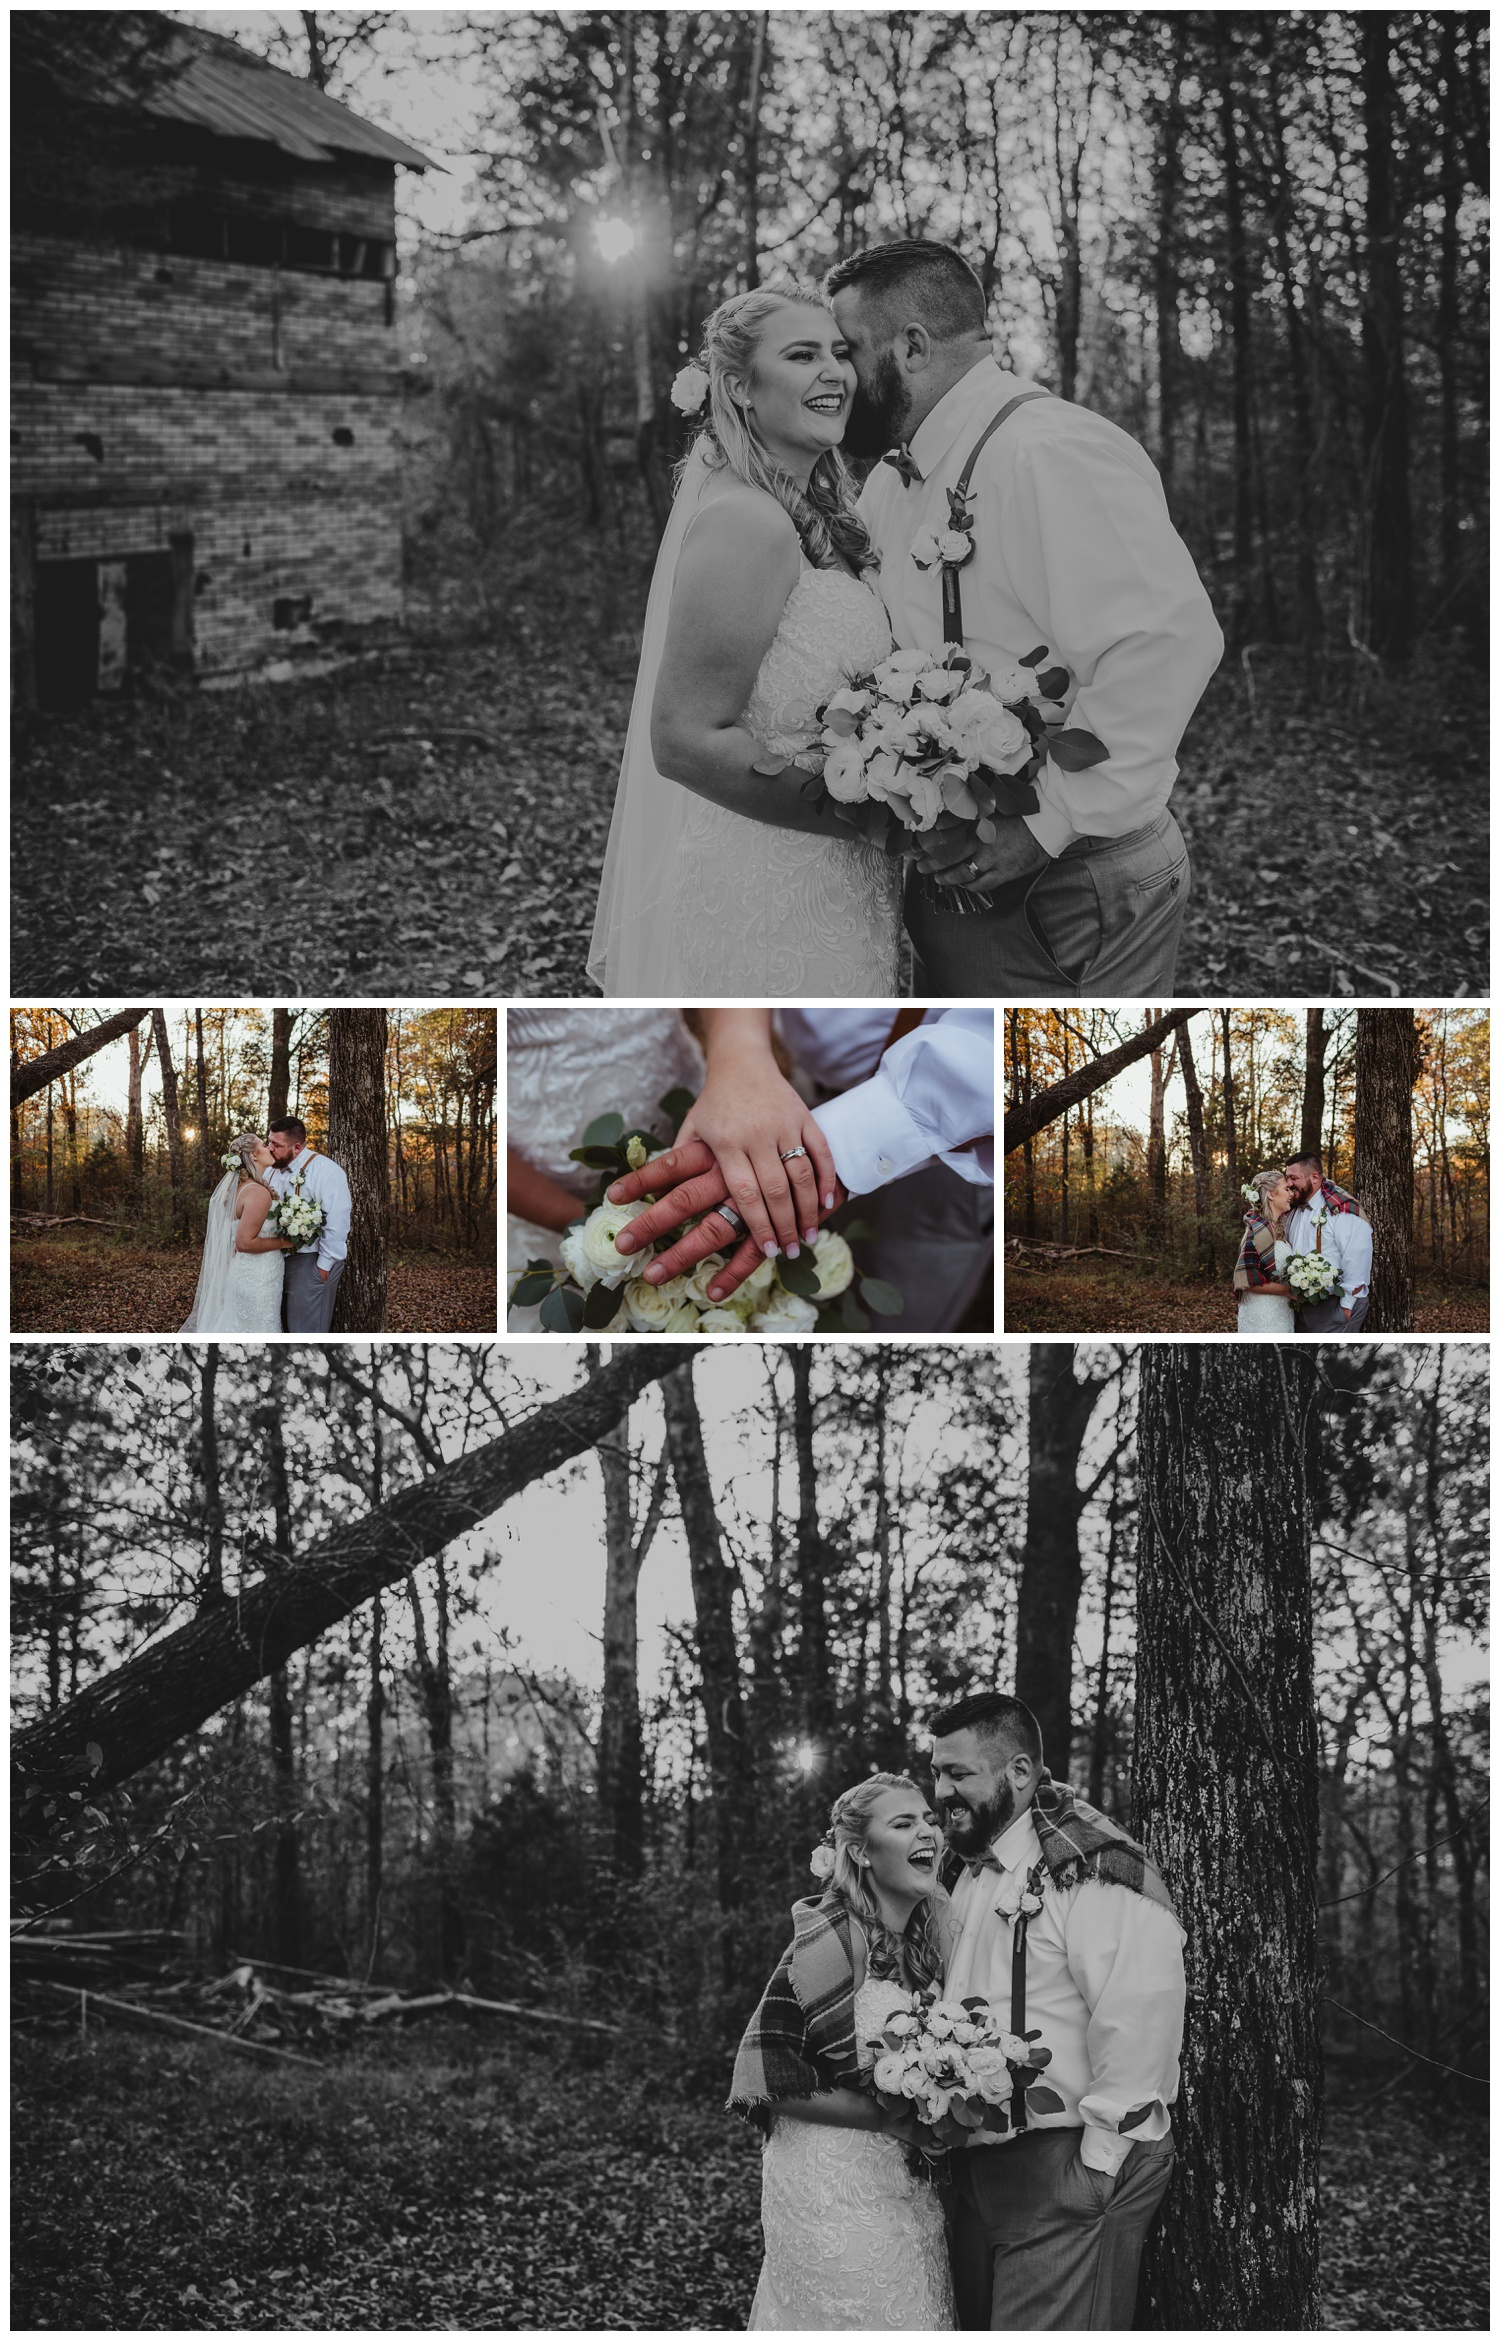 The bride and groom pose in the woods for wedding pictures at The Warren Estate, images by Rose Trail Images of Rolesville, NC.